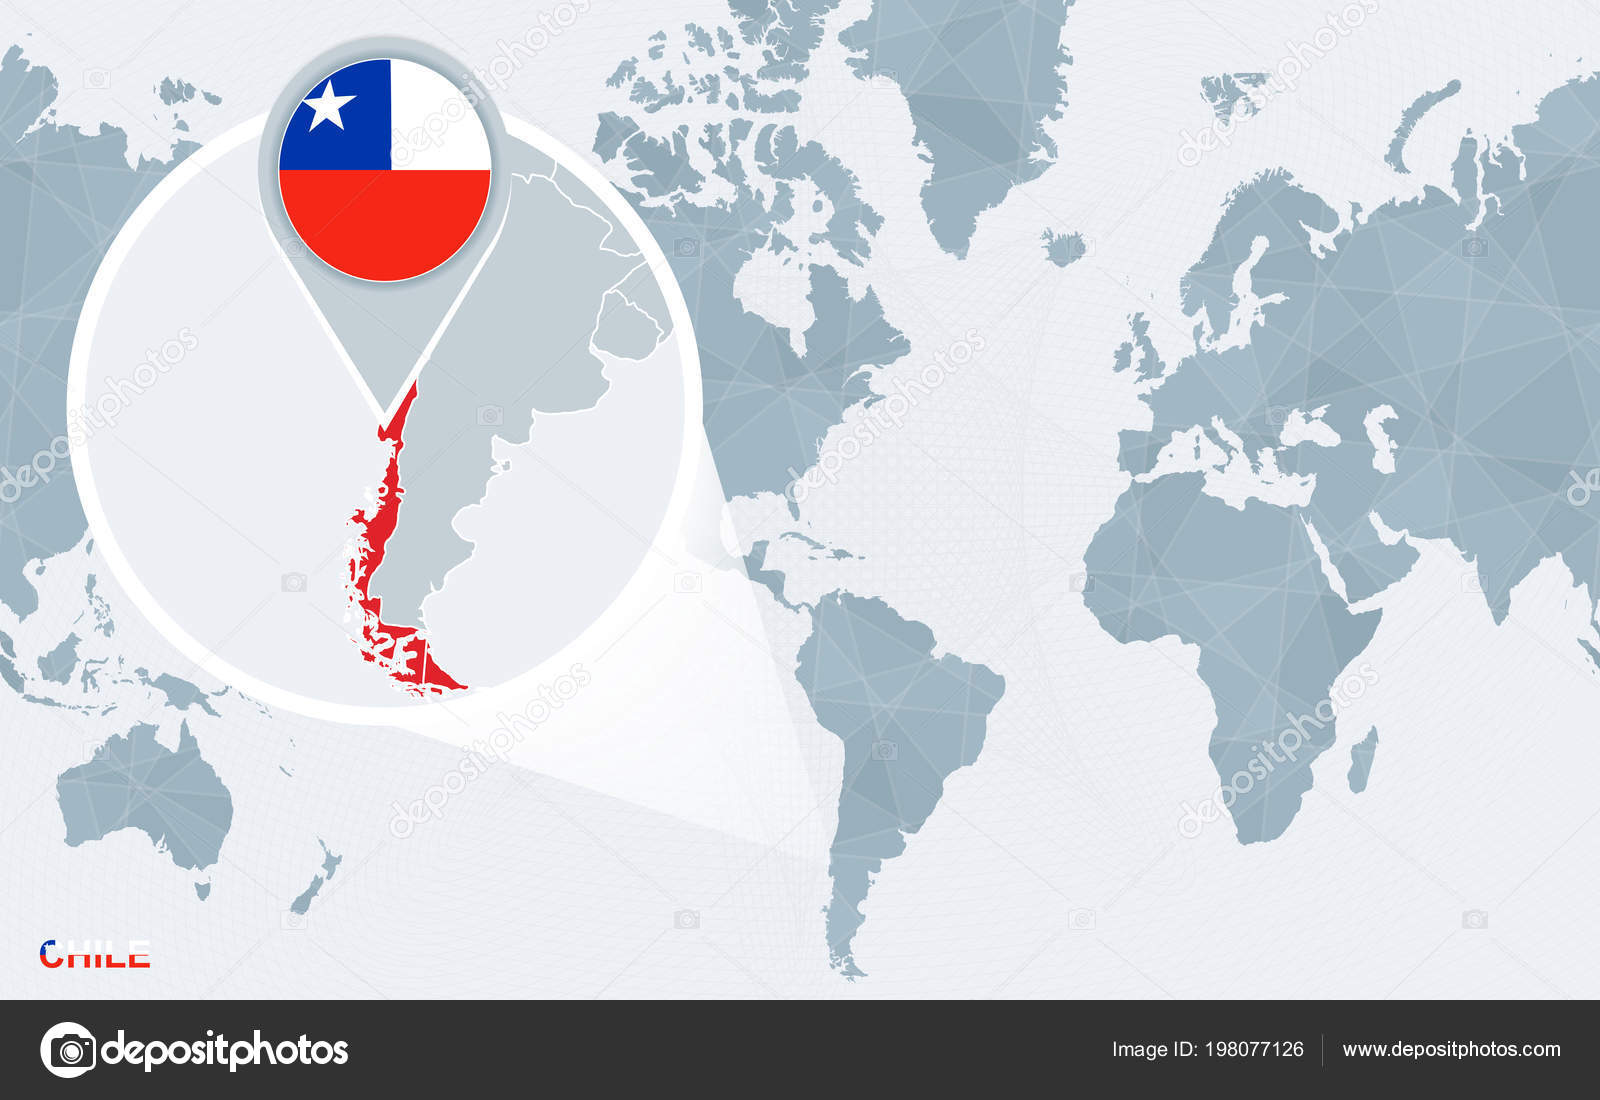 World Map Centered America Magnified Chile Blue Flag Map Chile ... on